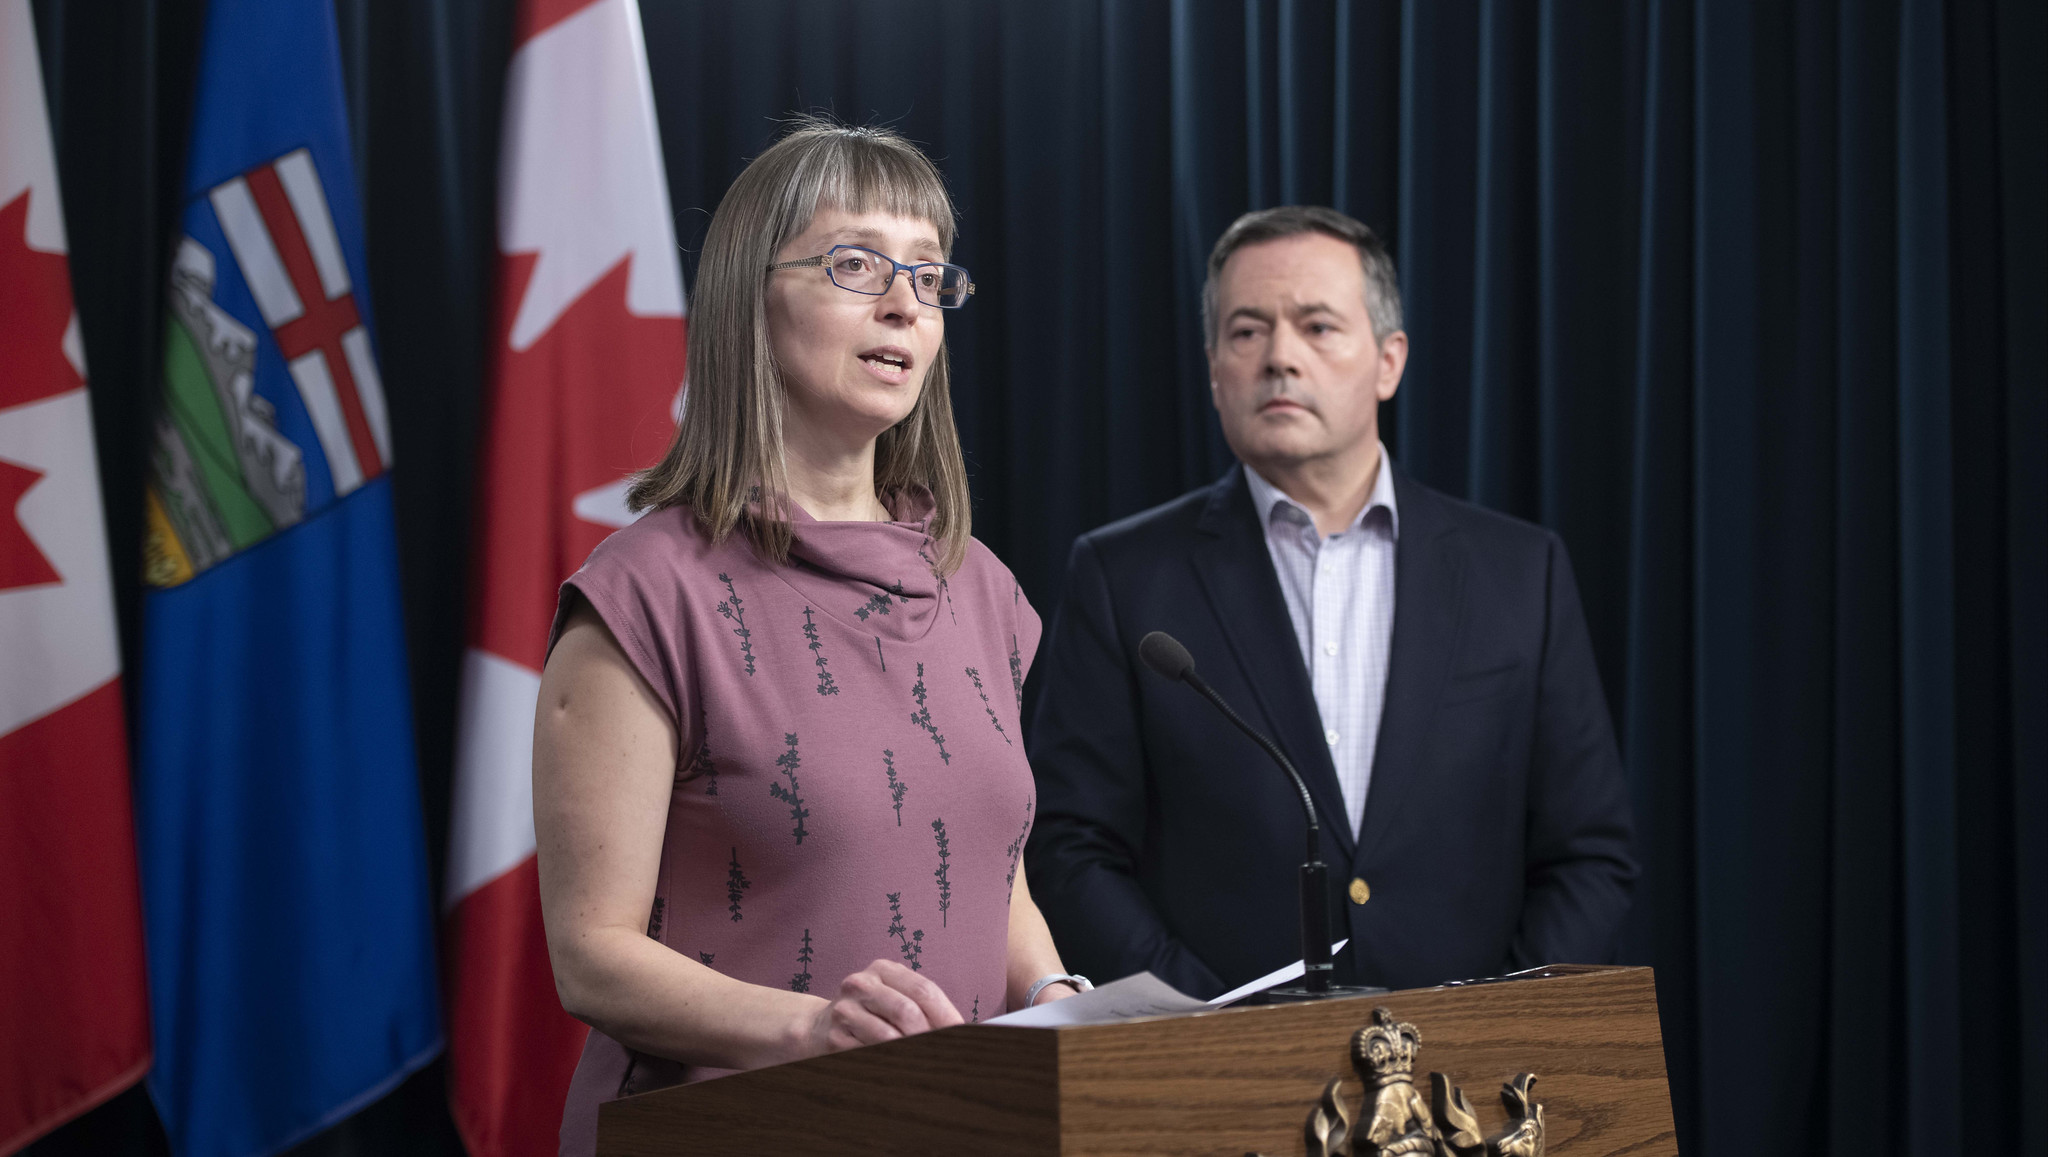 'Alberta didn't contain it': COVID-19 outbreak at oilsands camp has spread across the country